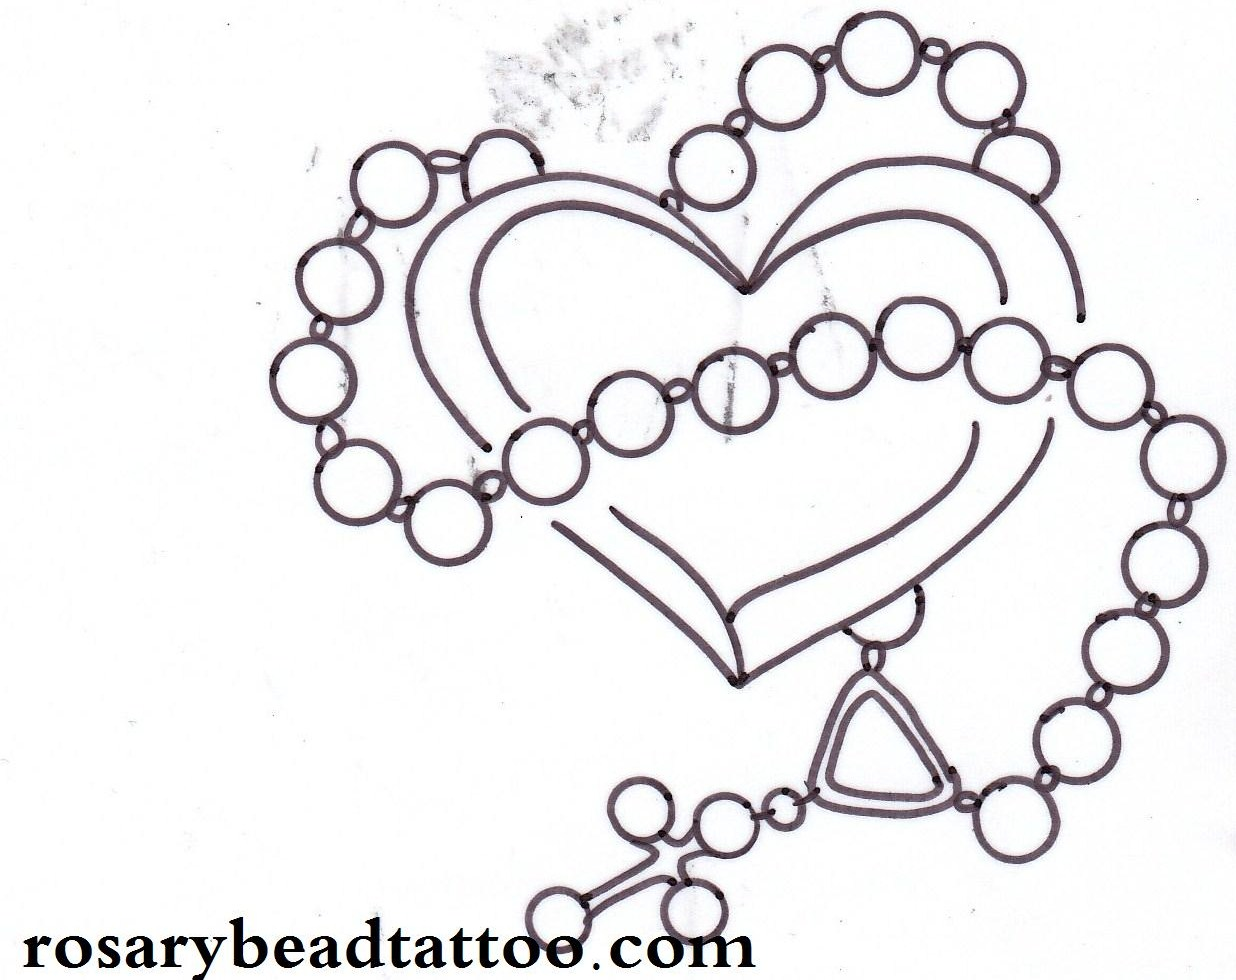 Rosary Cross Drawing With Heart Tattoo Design